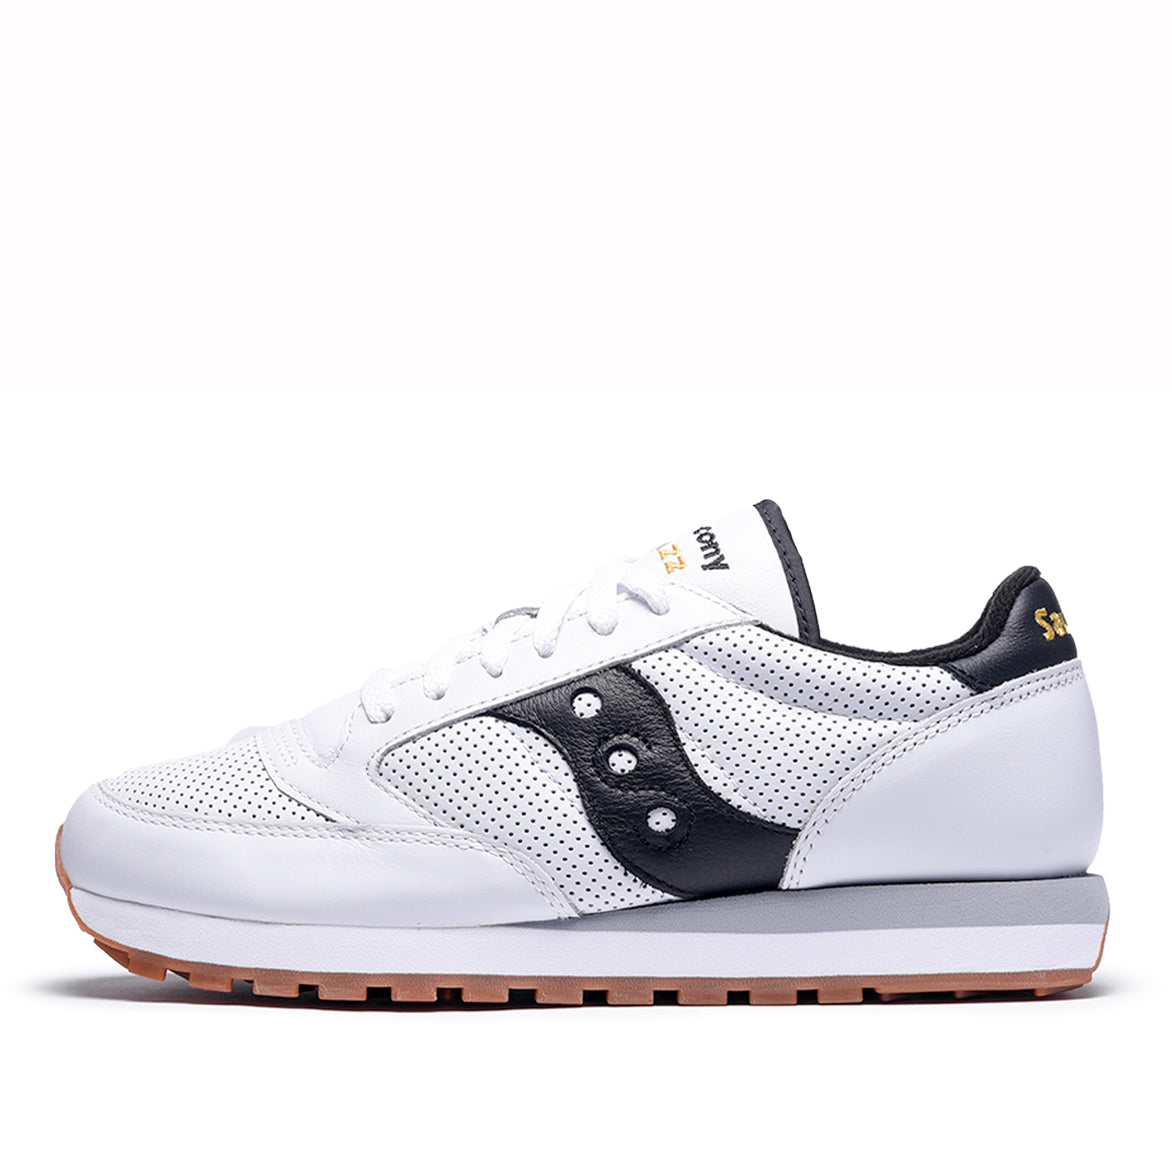 JAZZ ORIGINAL LEATHER - WHITE / BLACK